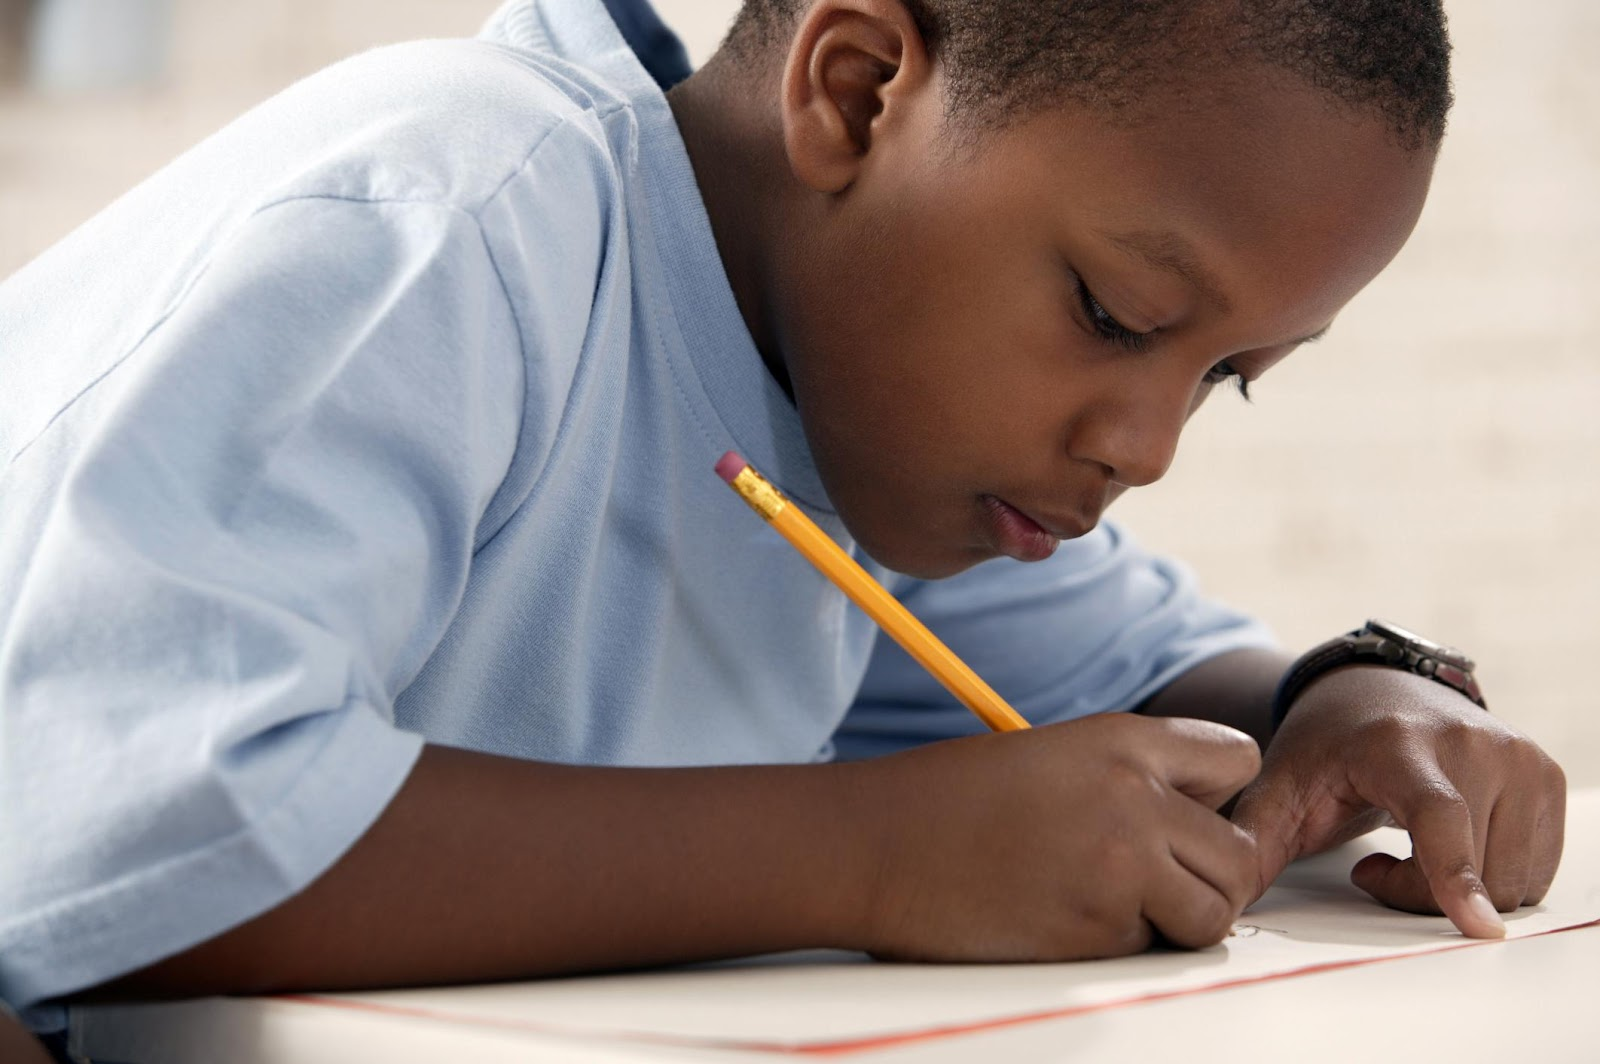 Boy writing with a pencil